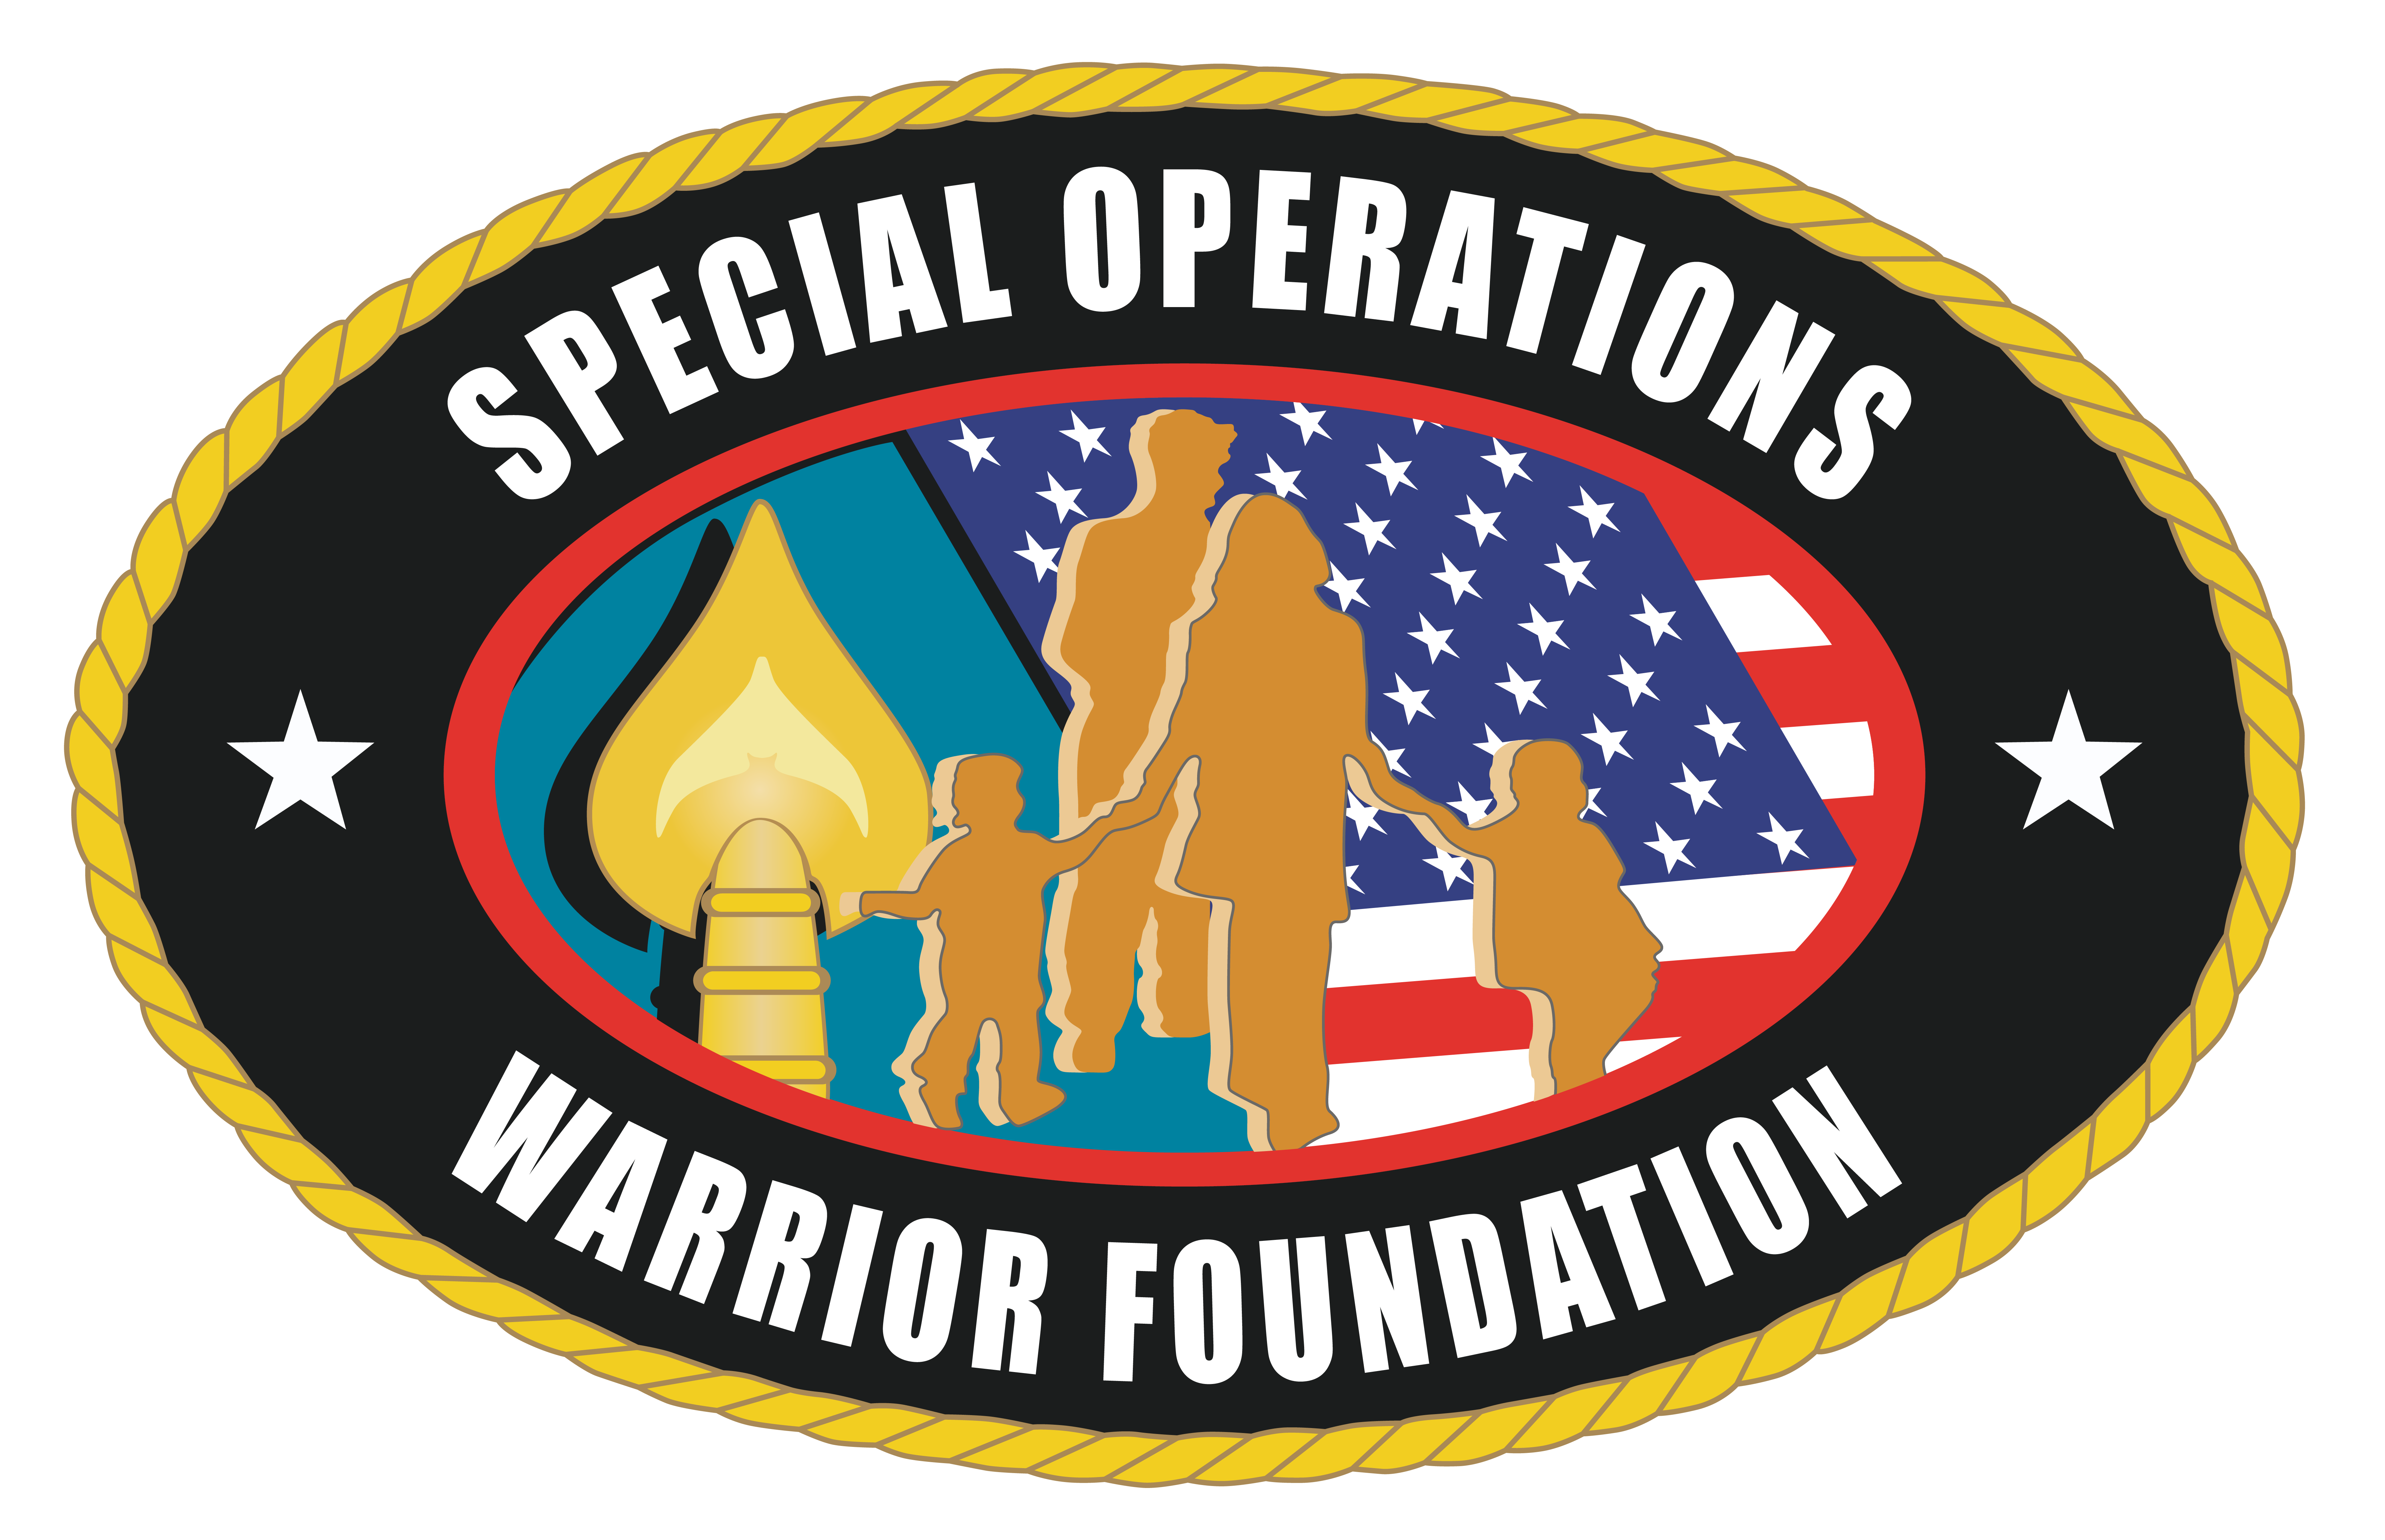 Special Operations Warrior Foundation logo; a black circle with the words, 'Special Operations Warrior Foundation' around the rim and an image of a family and an American flag in the center of the circle.